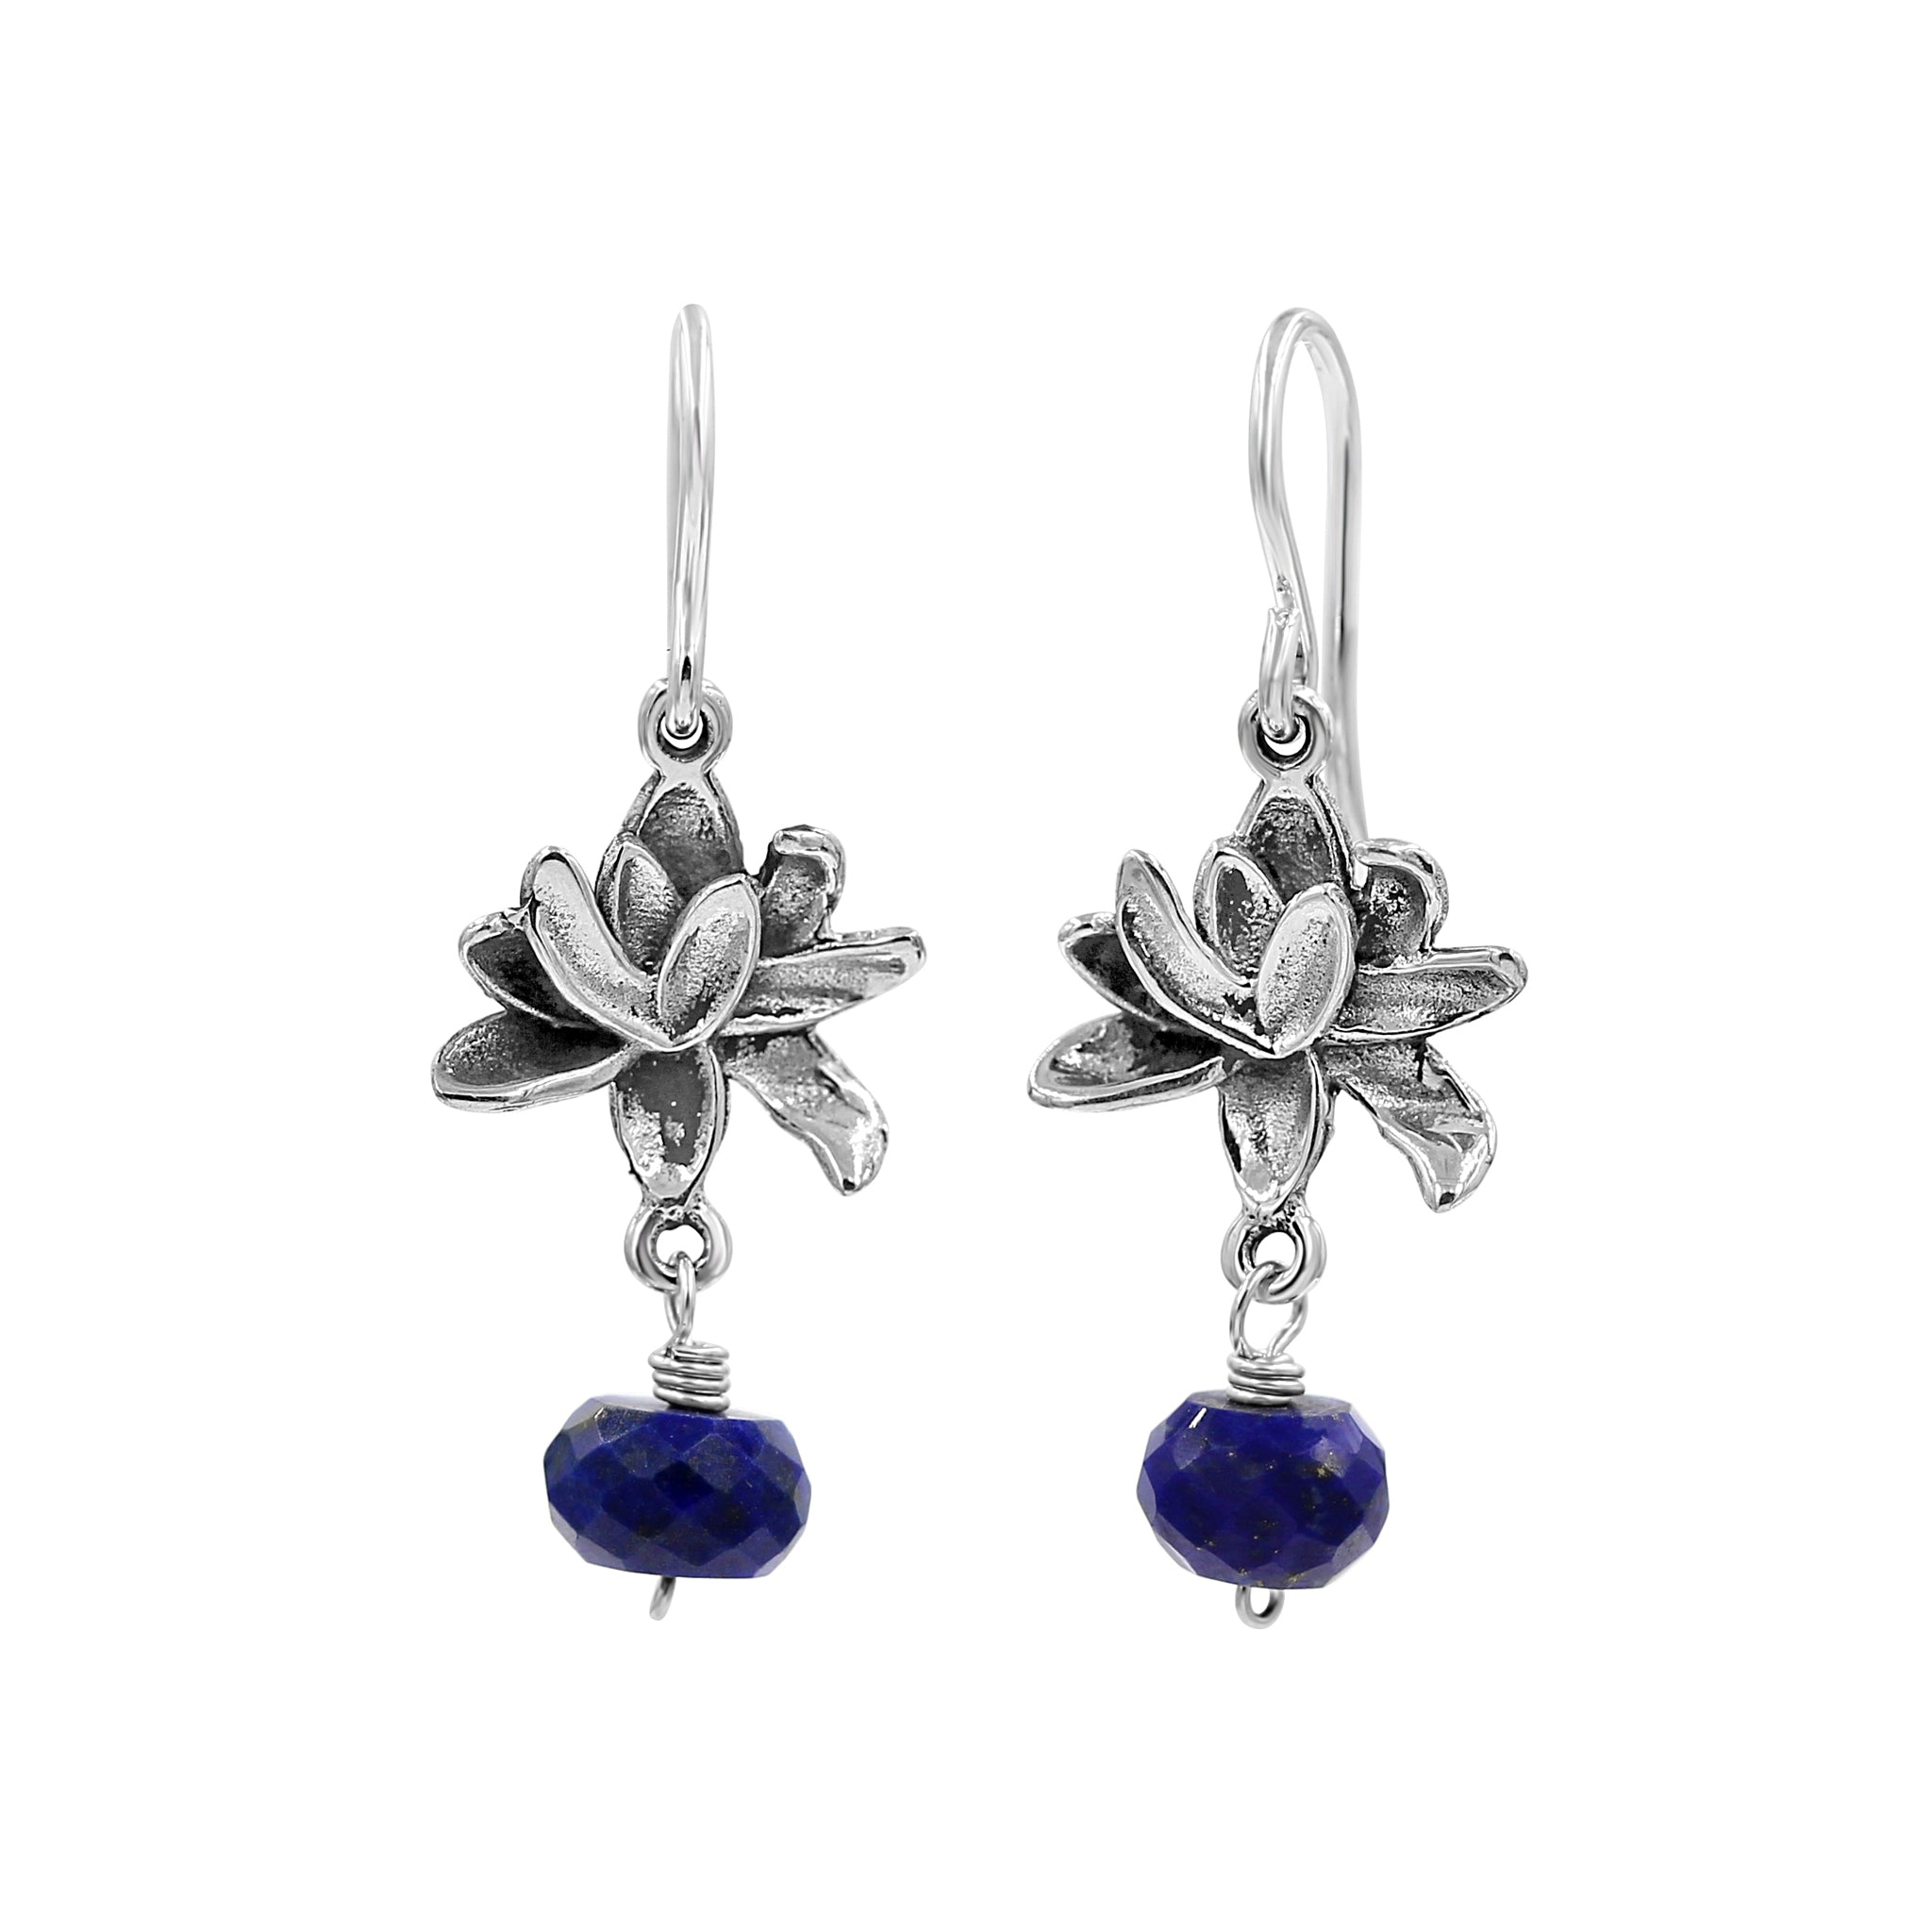 Blue Lapis Lotus Silver Earrings - Sati Gems Hawaii Healing Crystal Gemstone Jewelry